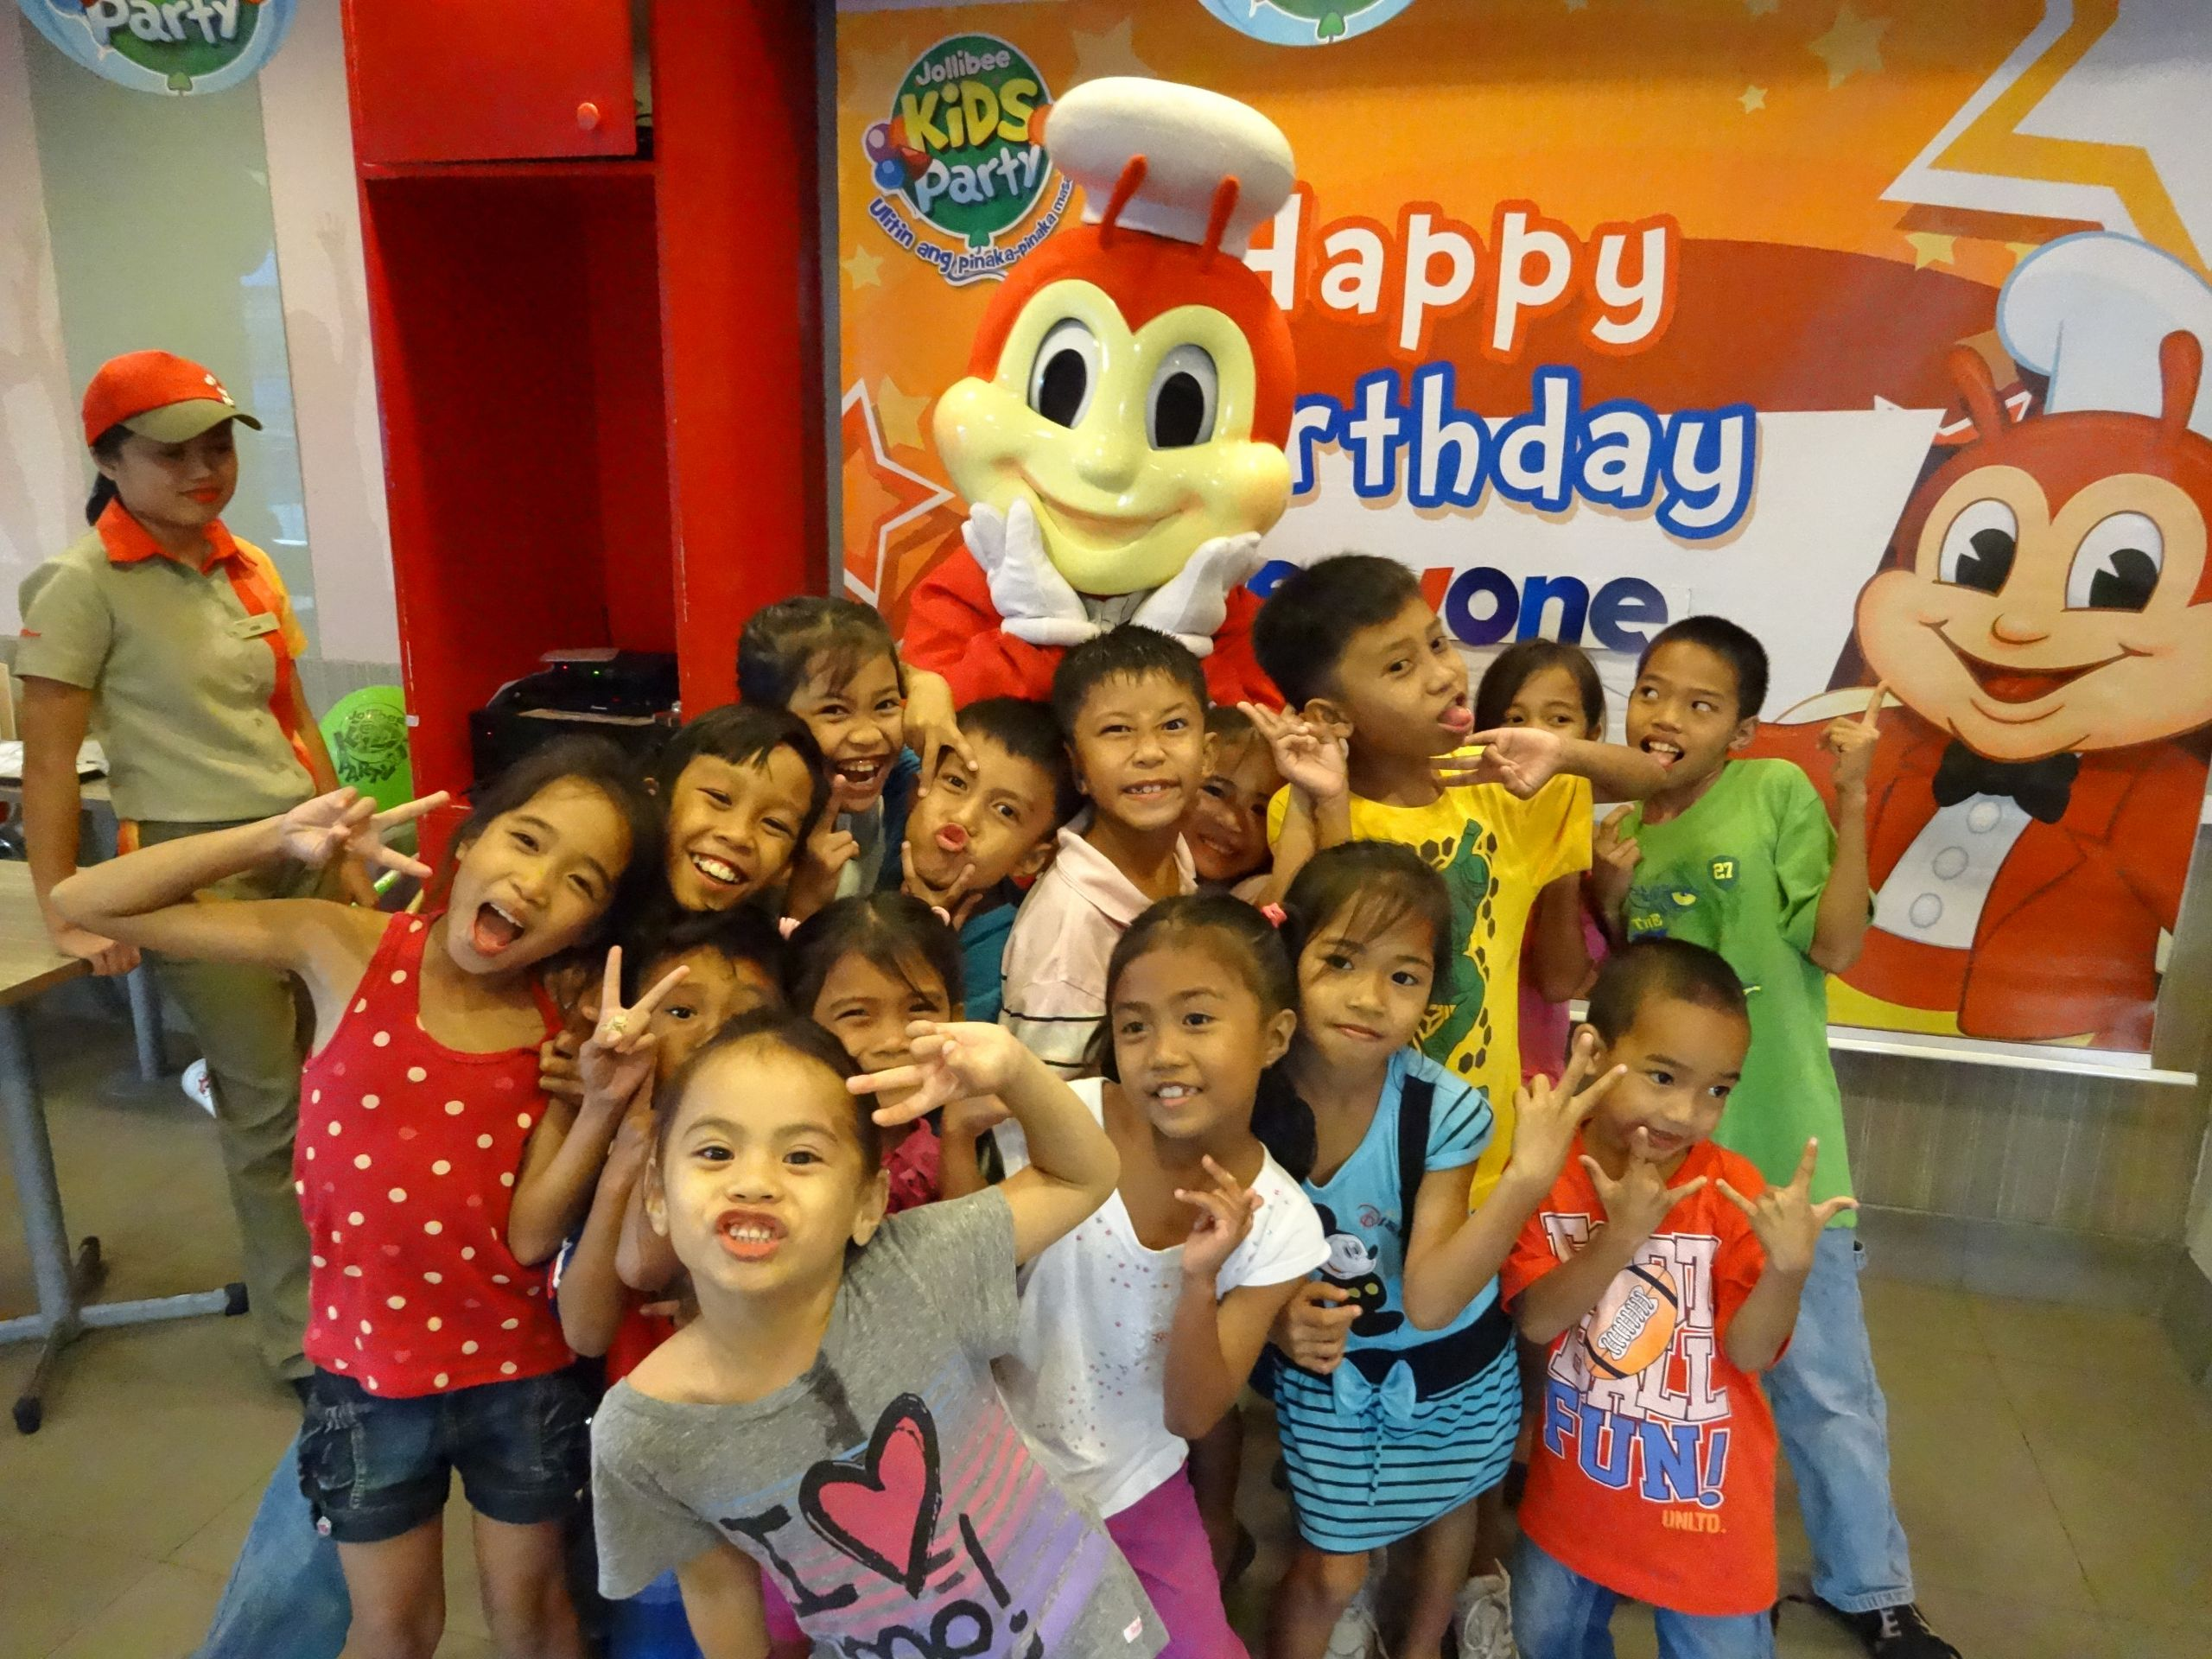 Jollibee Kids Party  The Kid's Super Awesome Jollibee Party – My Philippine Dreams